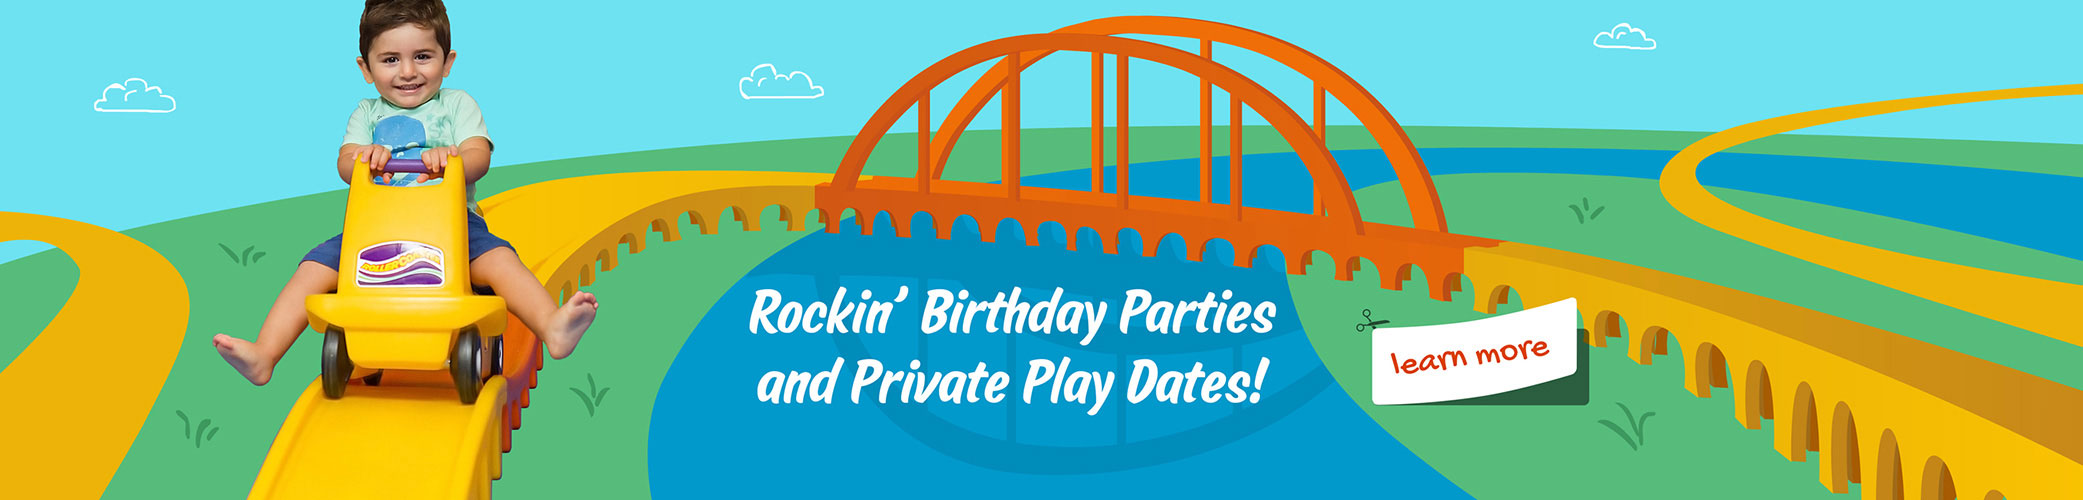 private birthday parties in columbus, OH